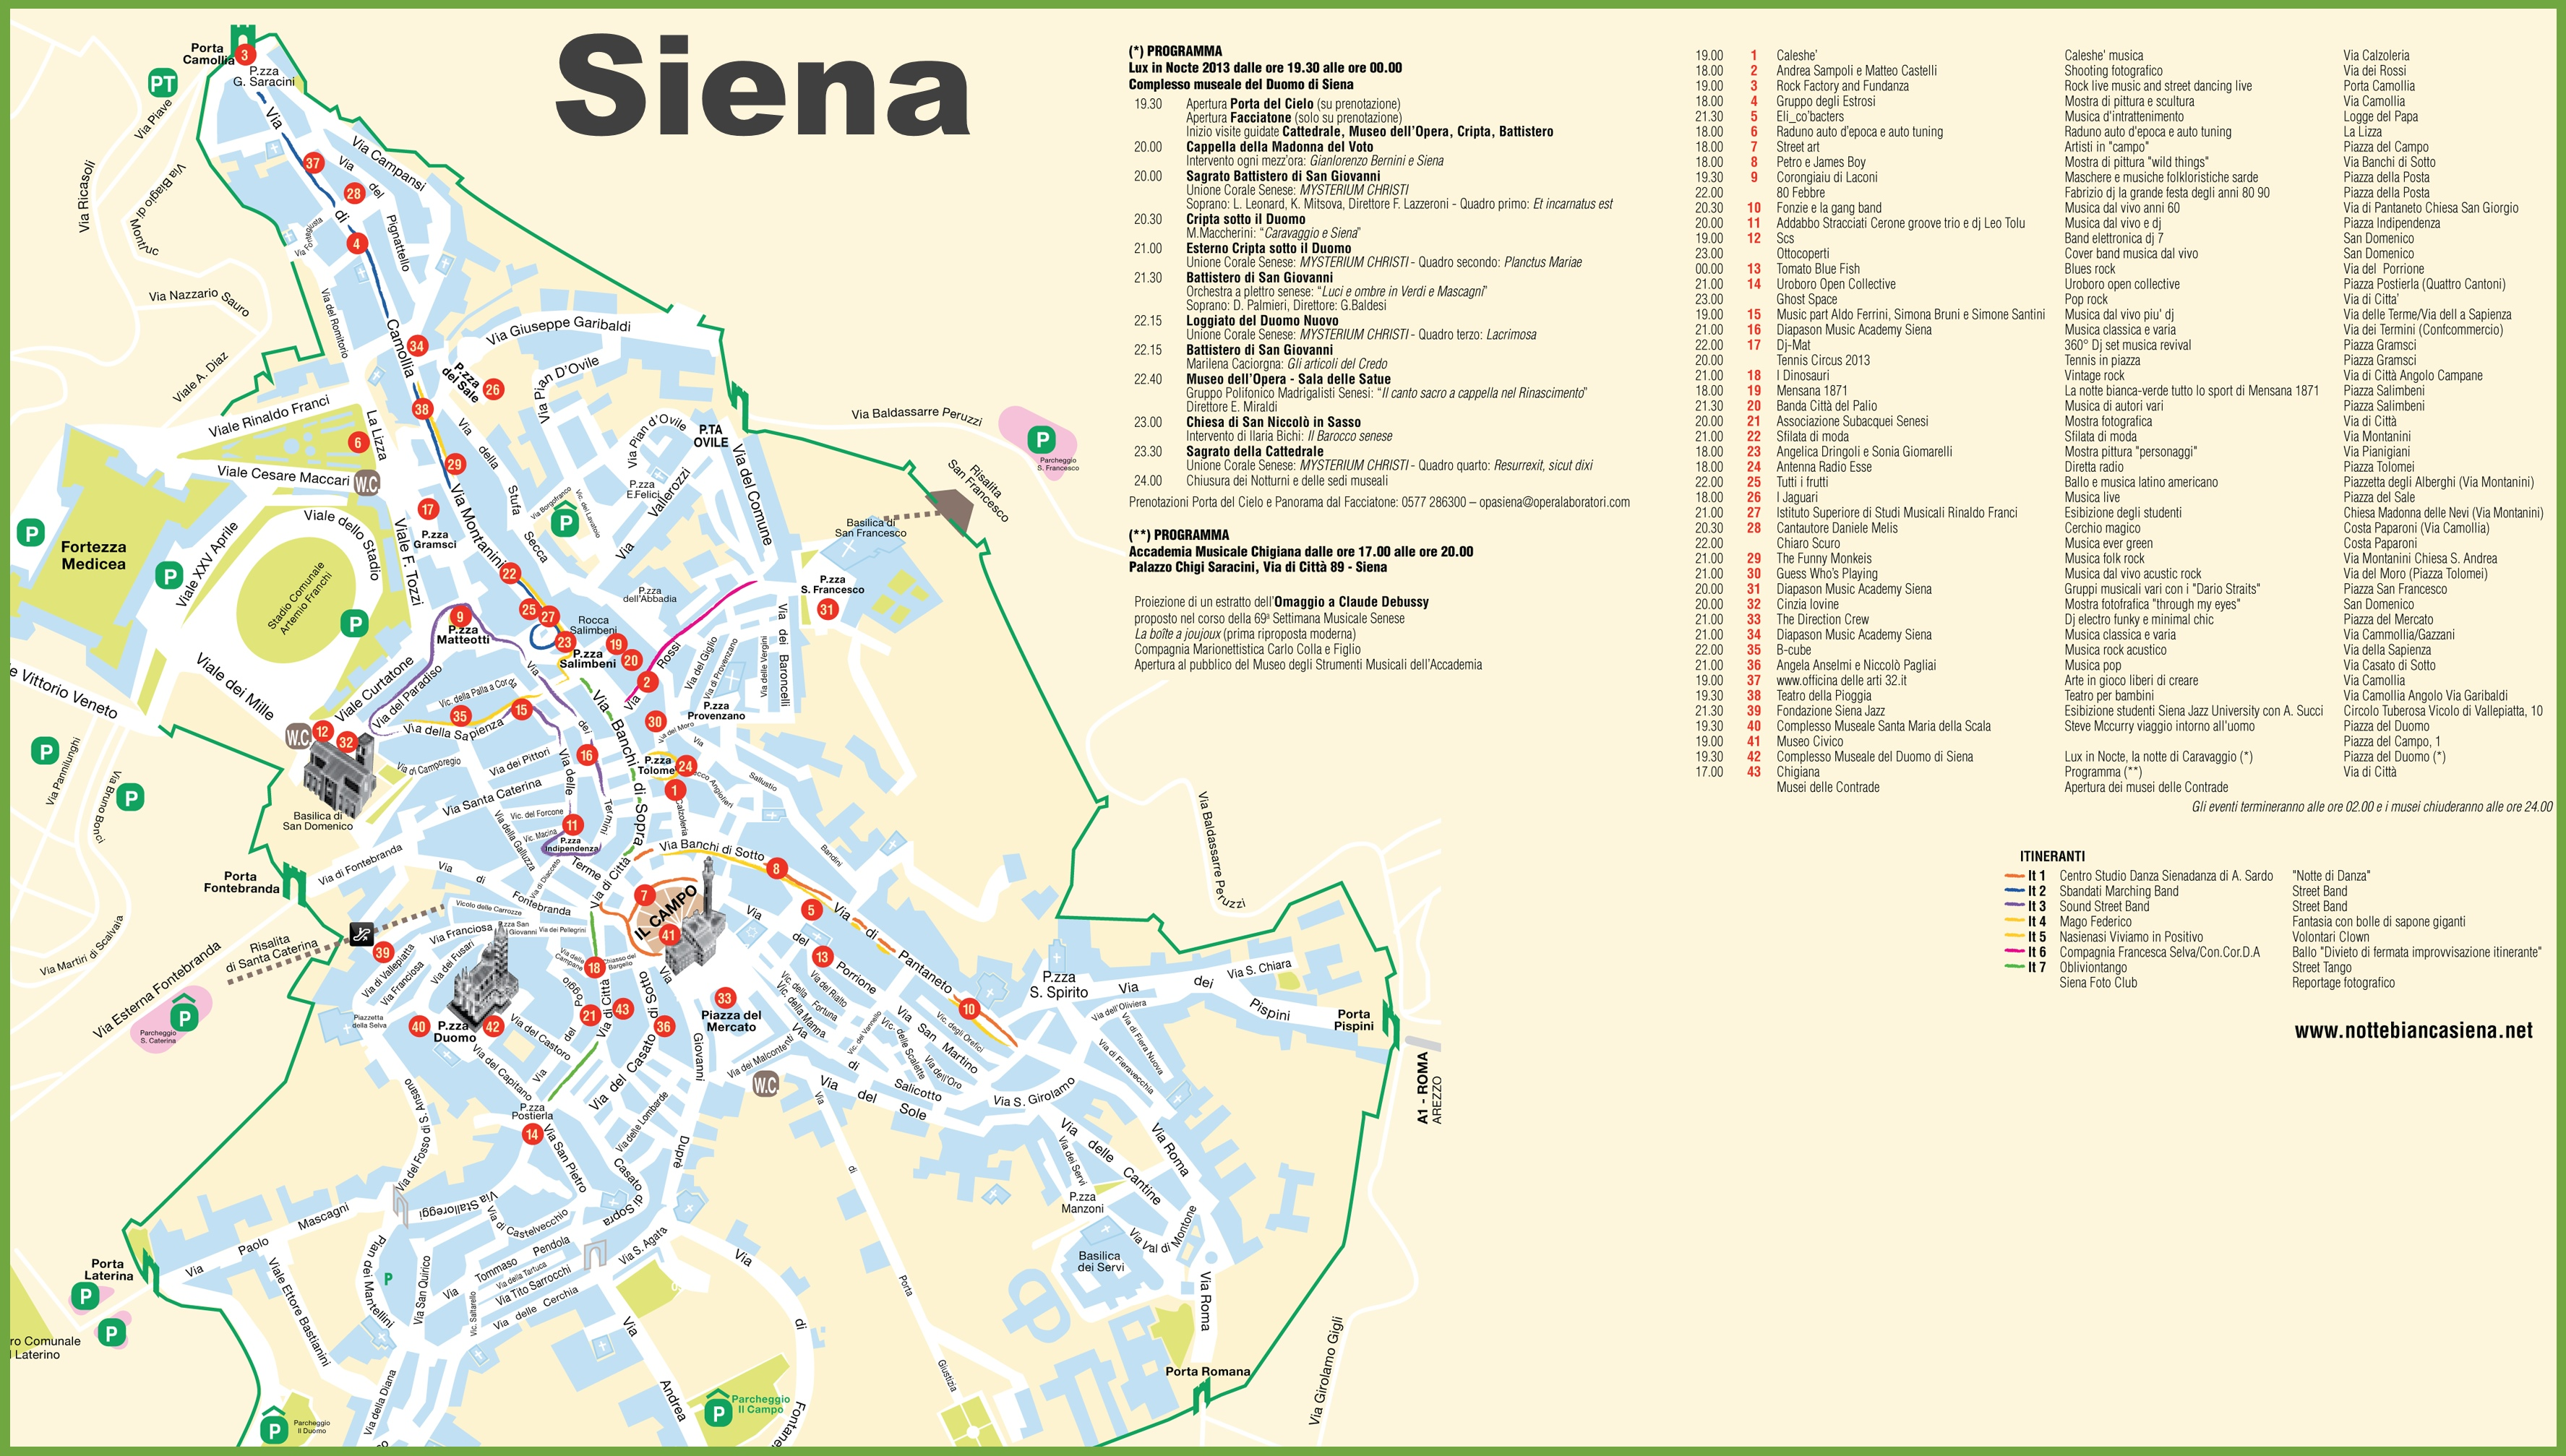 Siena tourist attractions map – Tourist Attractions Map In Russia